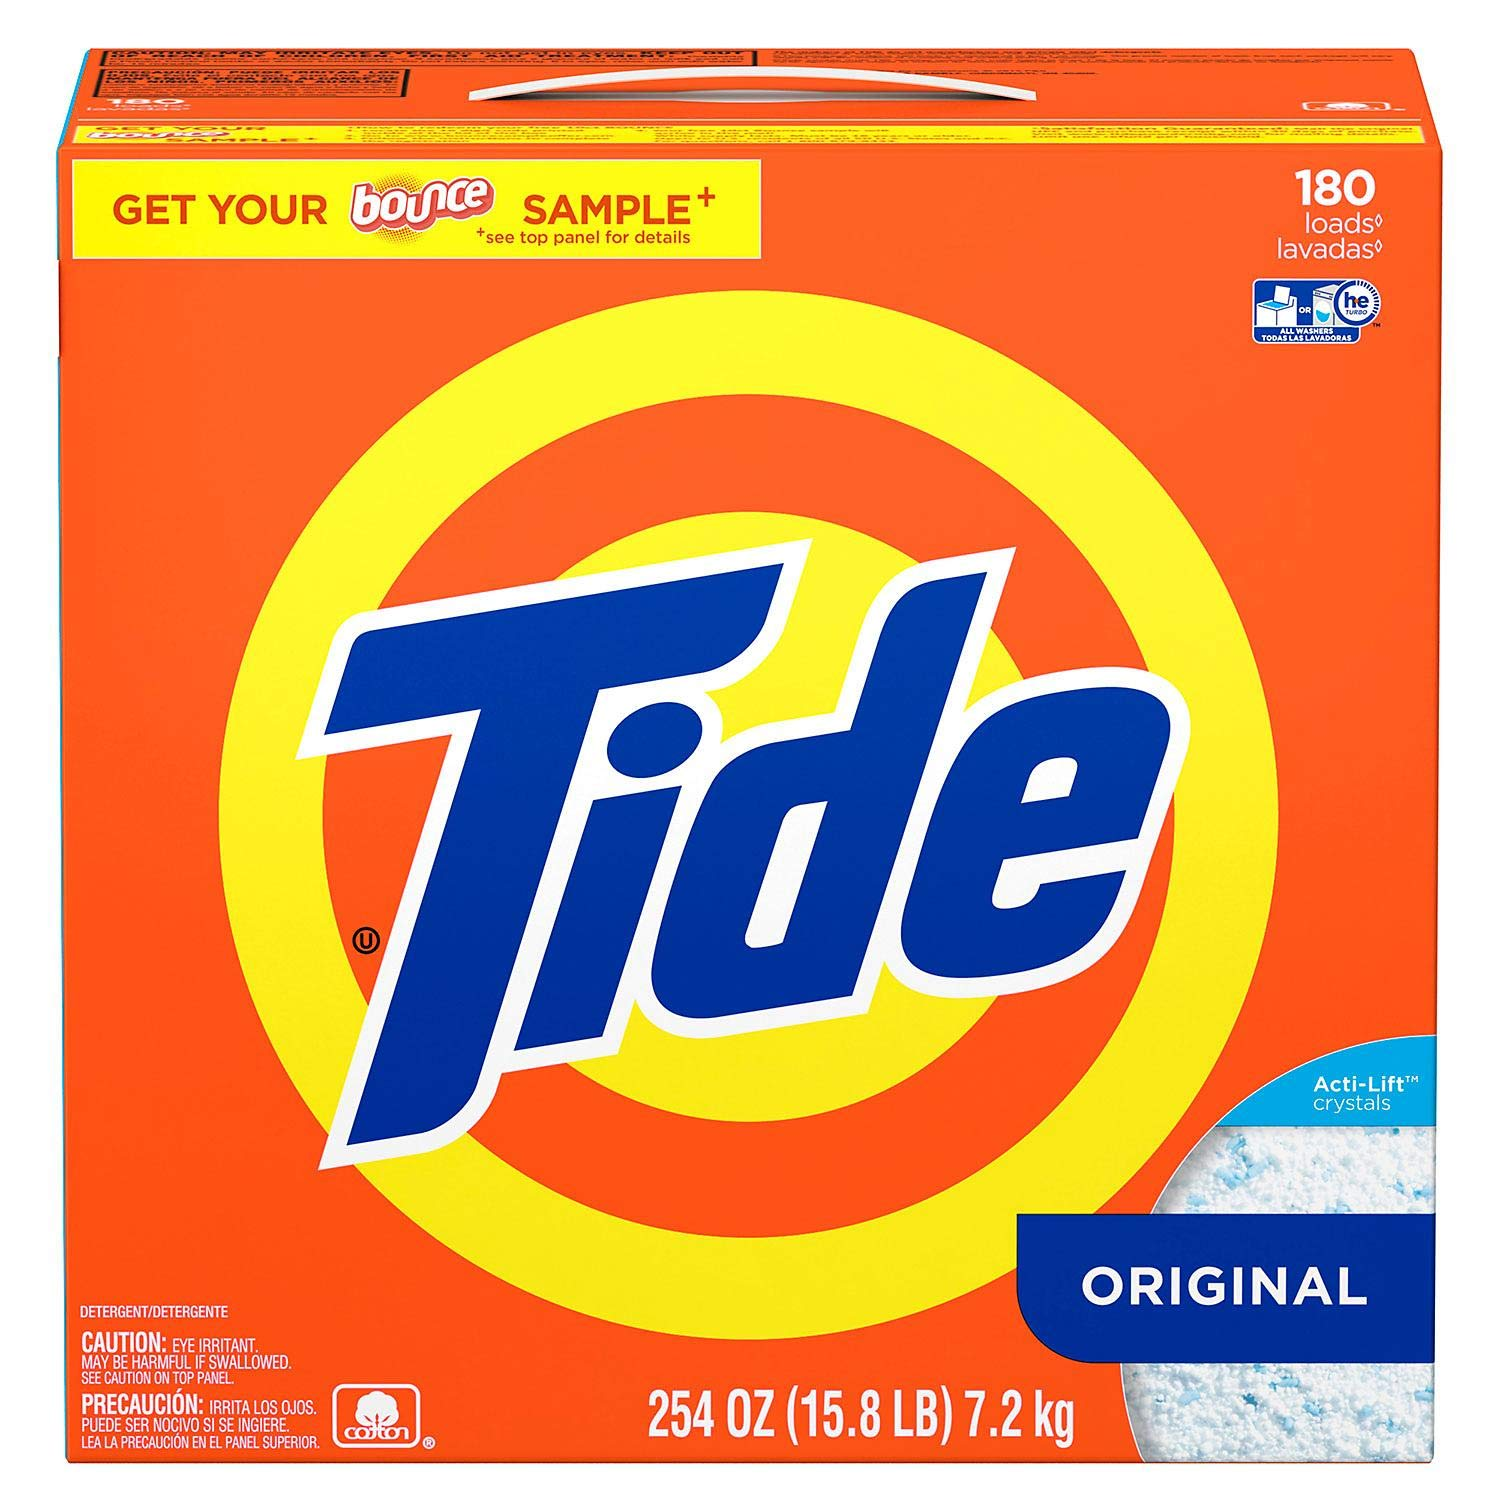 Ultra Tide He Powder Laundry Detergent, Original - 225 Oz. - 160 Loads Ultra he Powder Laundry by Tide